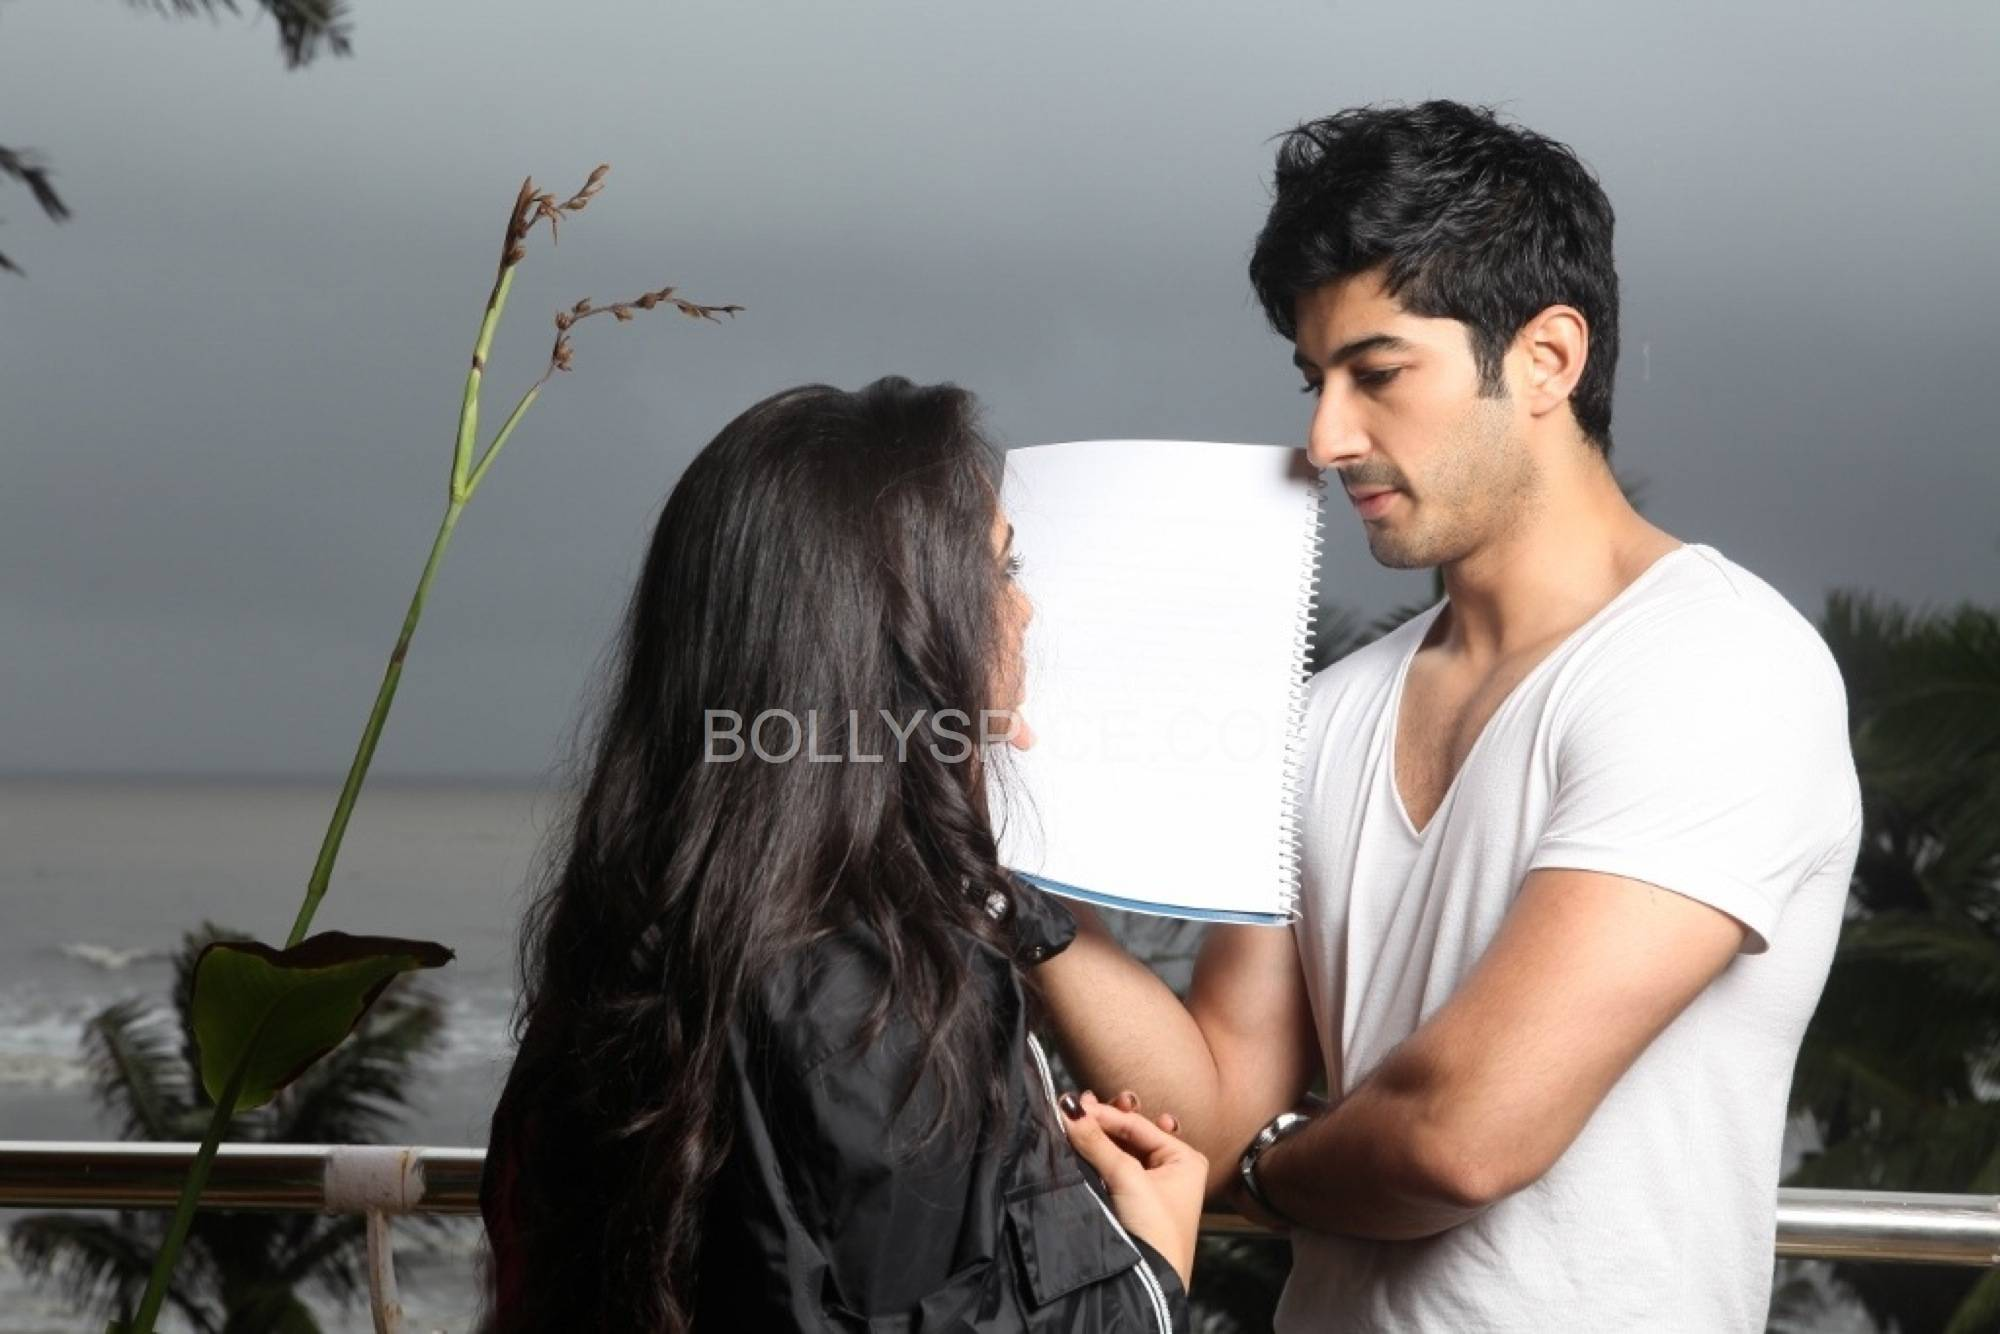 Mohit Marwah with mystery girl Whos That Girl with Mohit Marwah in Fugly?